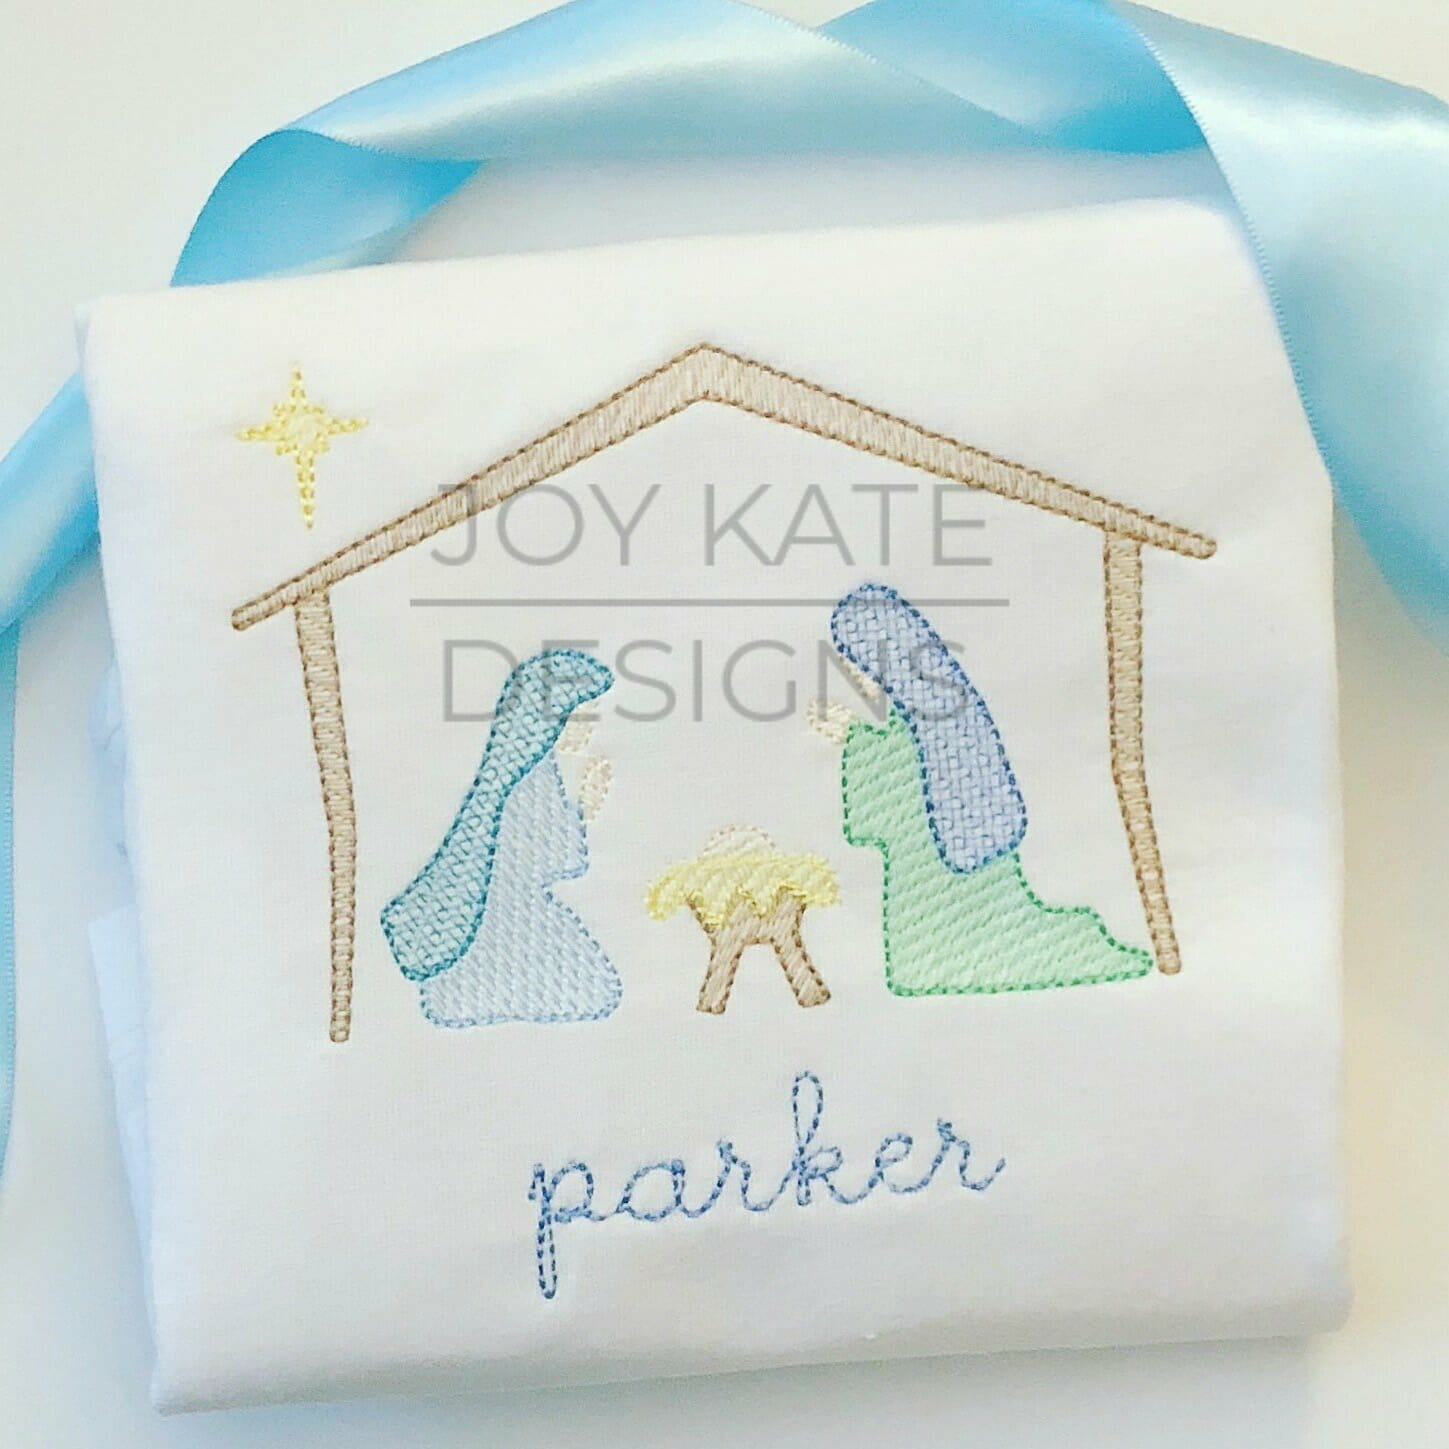 Christmas Nativity Scene Vintage Sketch Embroidery Design